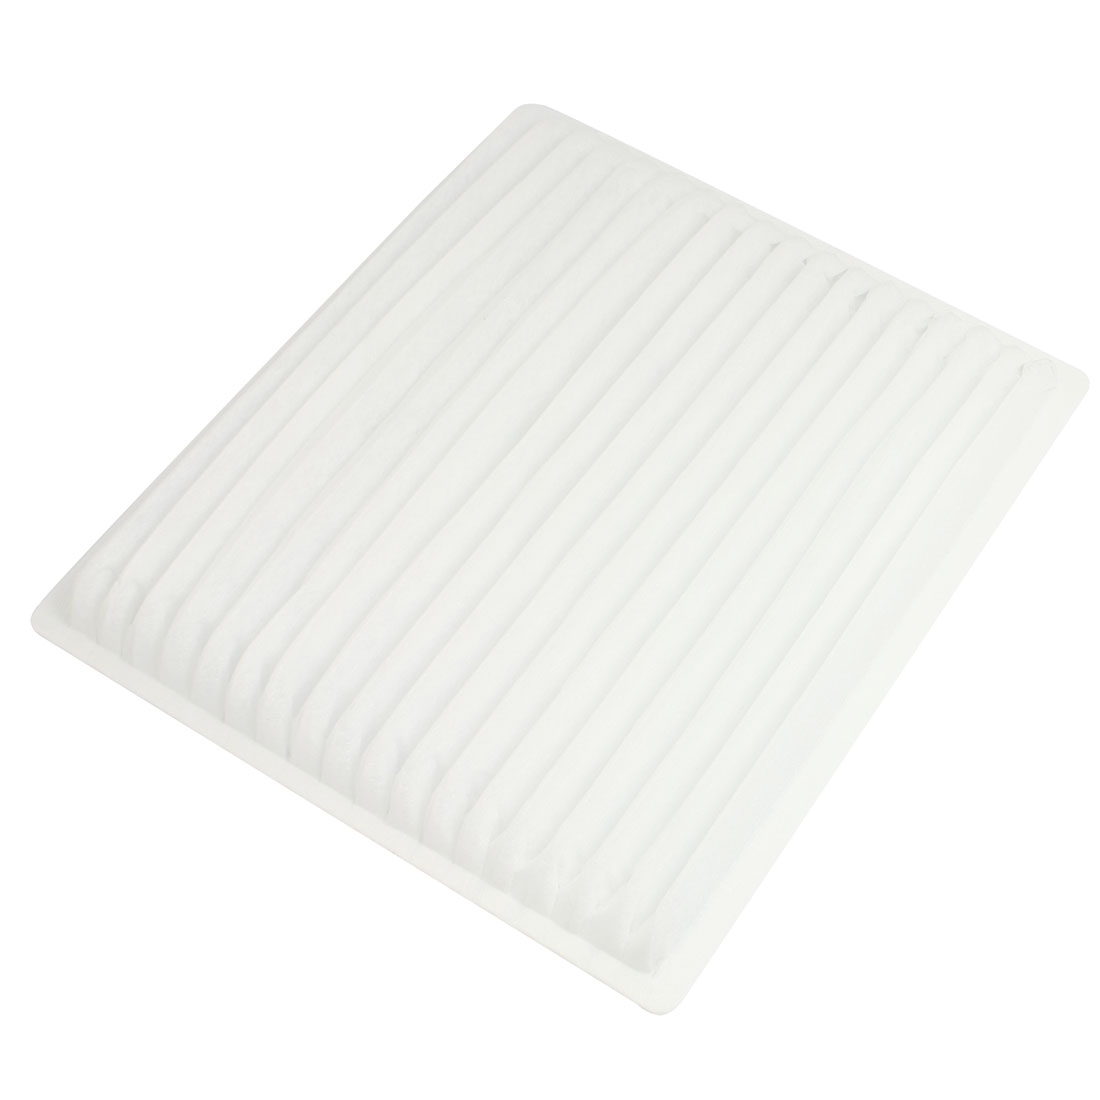 Car Auto Non-woven Cotton Cabin Air Filter for Scion TC xA xB